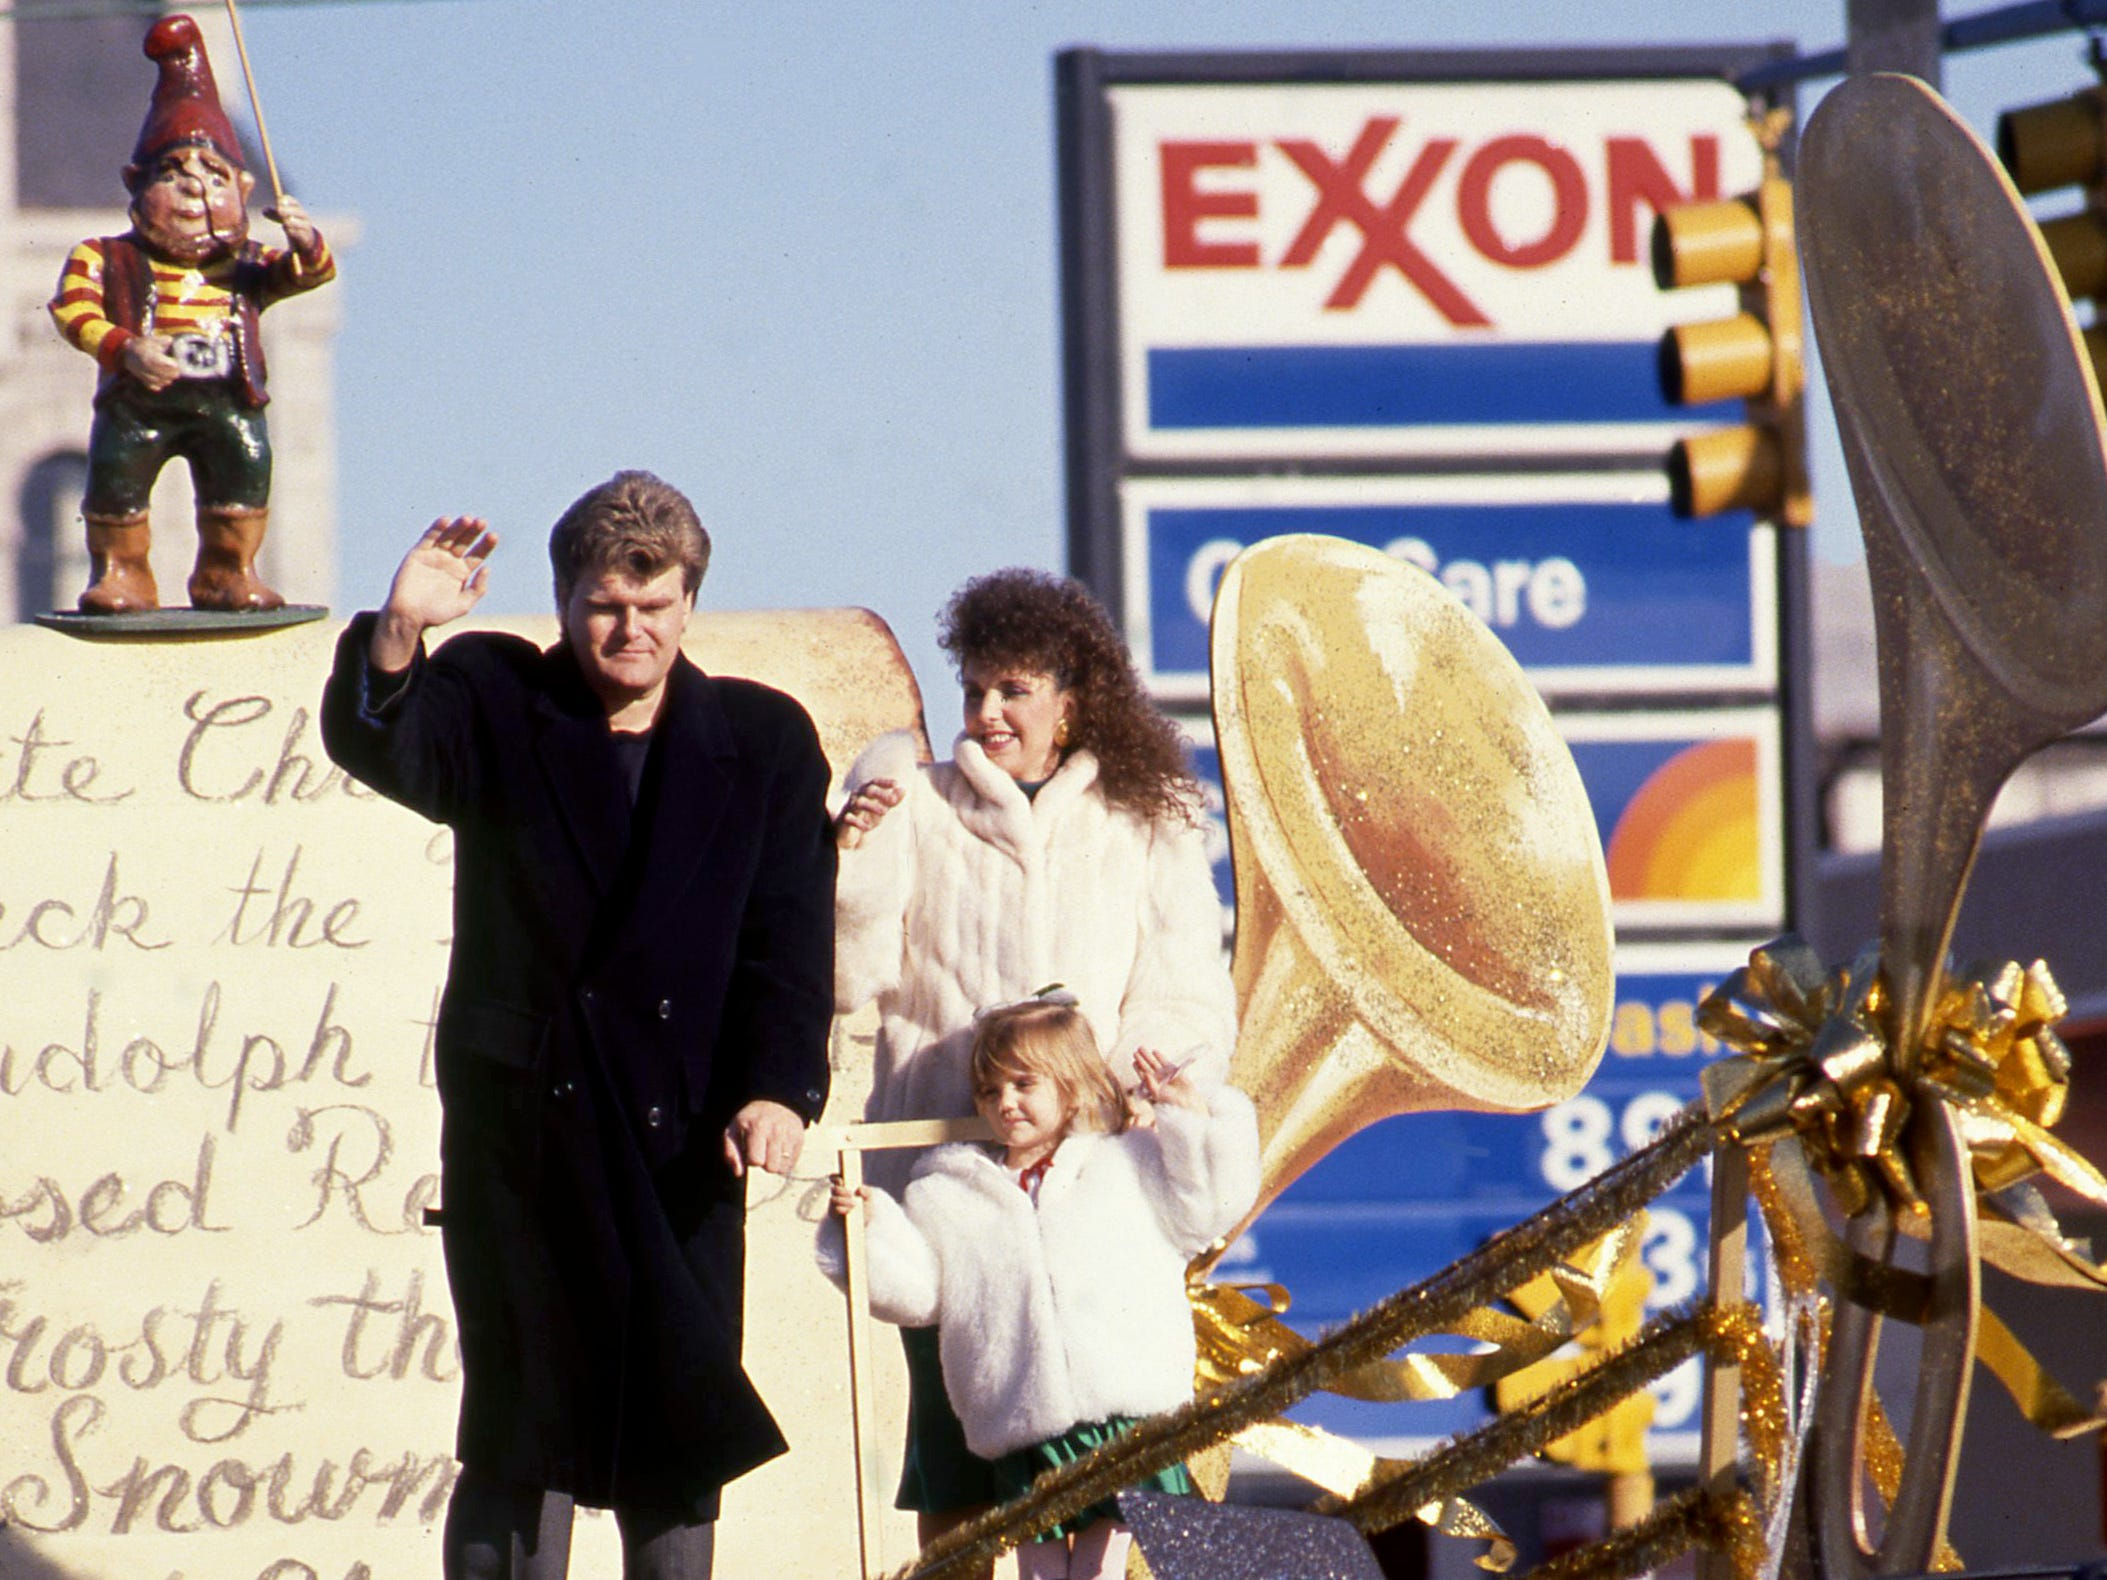 Grand marshals husband and wife country music stars Ricky Skaggs and Sharon White, along with their daughter, wave to the crowd during the annual Christmas parade Dec. 4, 1988.